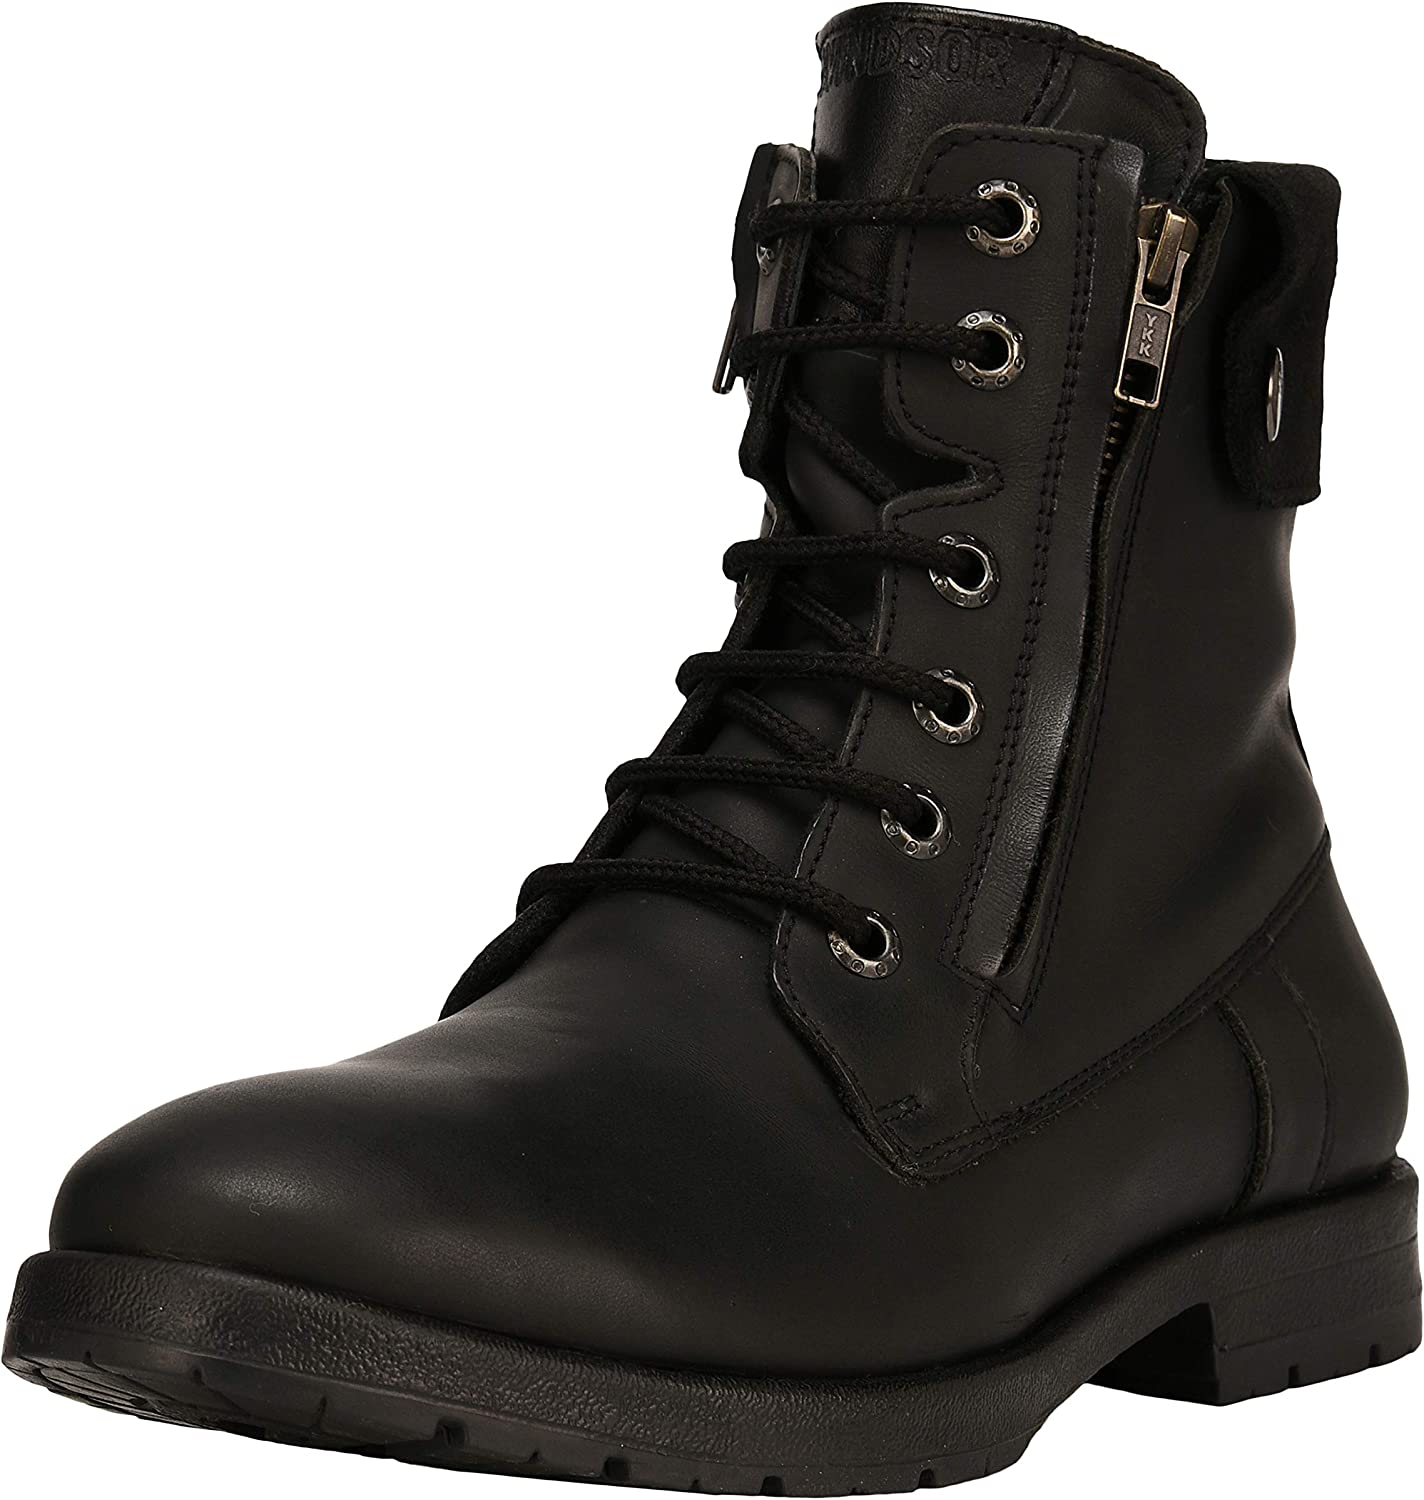 LIBERTYZENO Ranking TOP14 Ankle Ranking TOP12 Boots for Men Casual He inch Leather Genuine 1